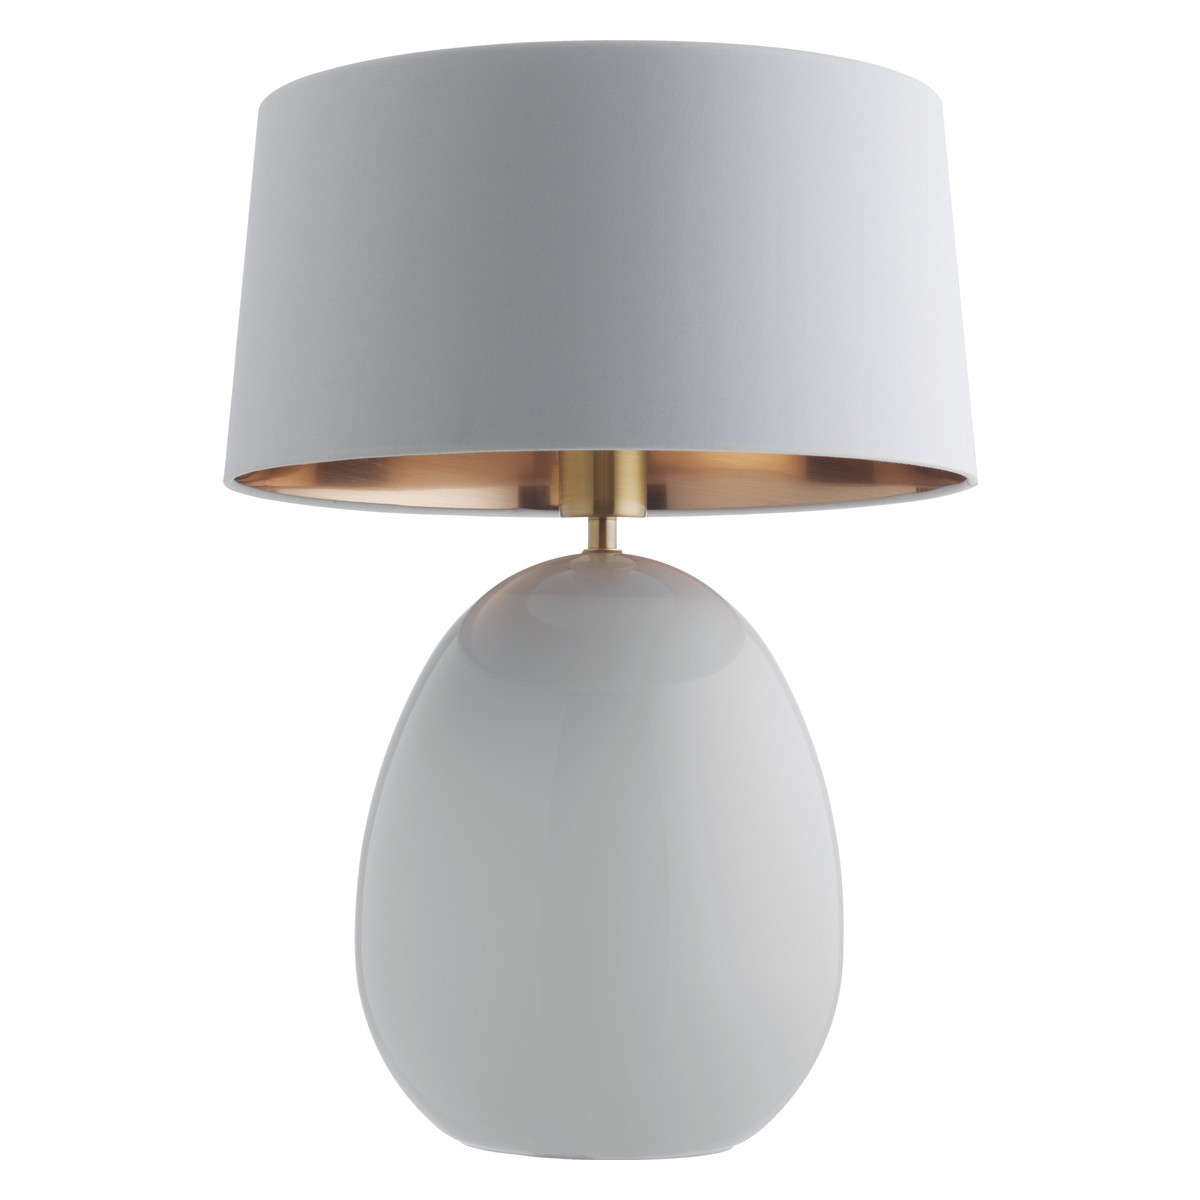 White glass lamp 10 options for table lamps warisan lighting conclusion white glass lamps geotapseo Images